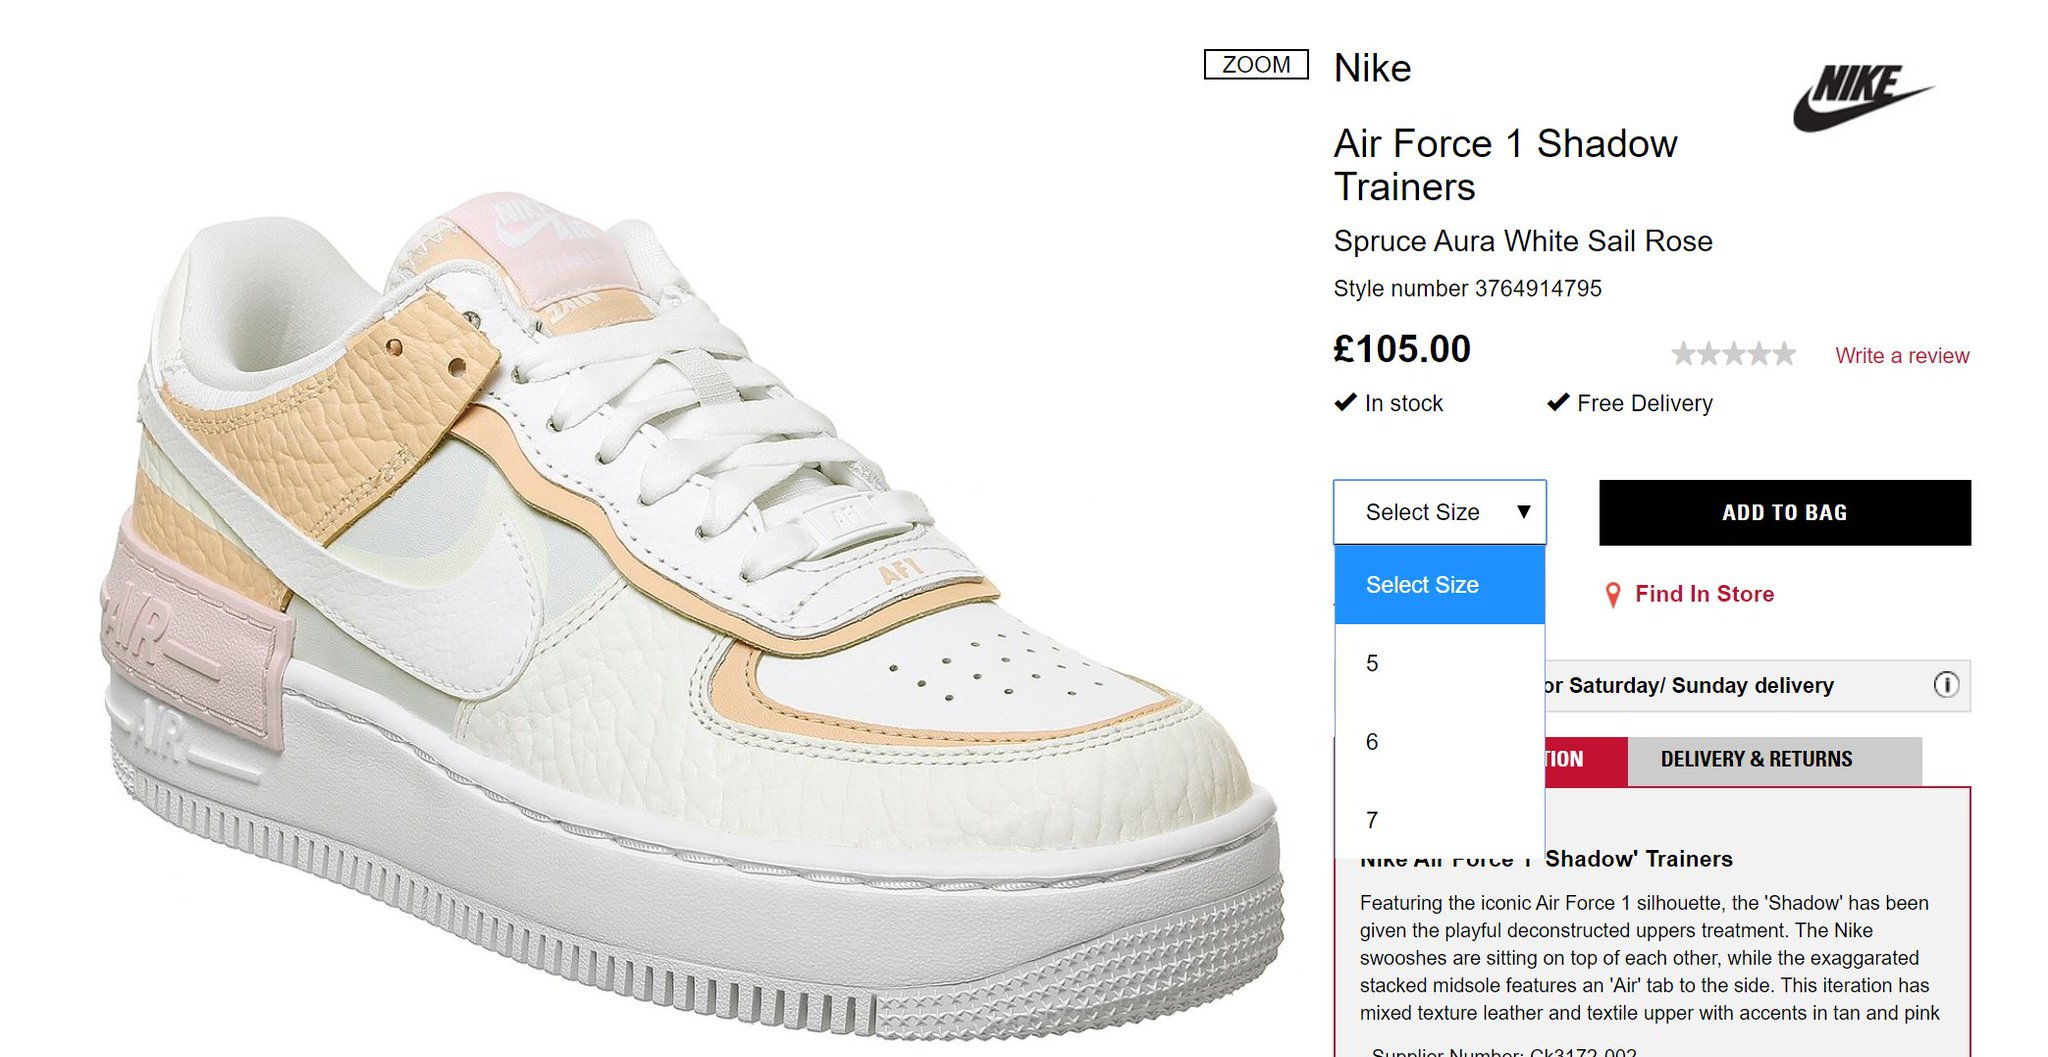 Moresneakers Com On Twitter Ad Women S Nike Air Force 1 Shadow Se Spruce Aura Sail Small Restock Live Via Offspring Https T Co Vvly2o2coe Office Https T Co Rs94vio8sz Https T Co Jx1yrm2vmp